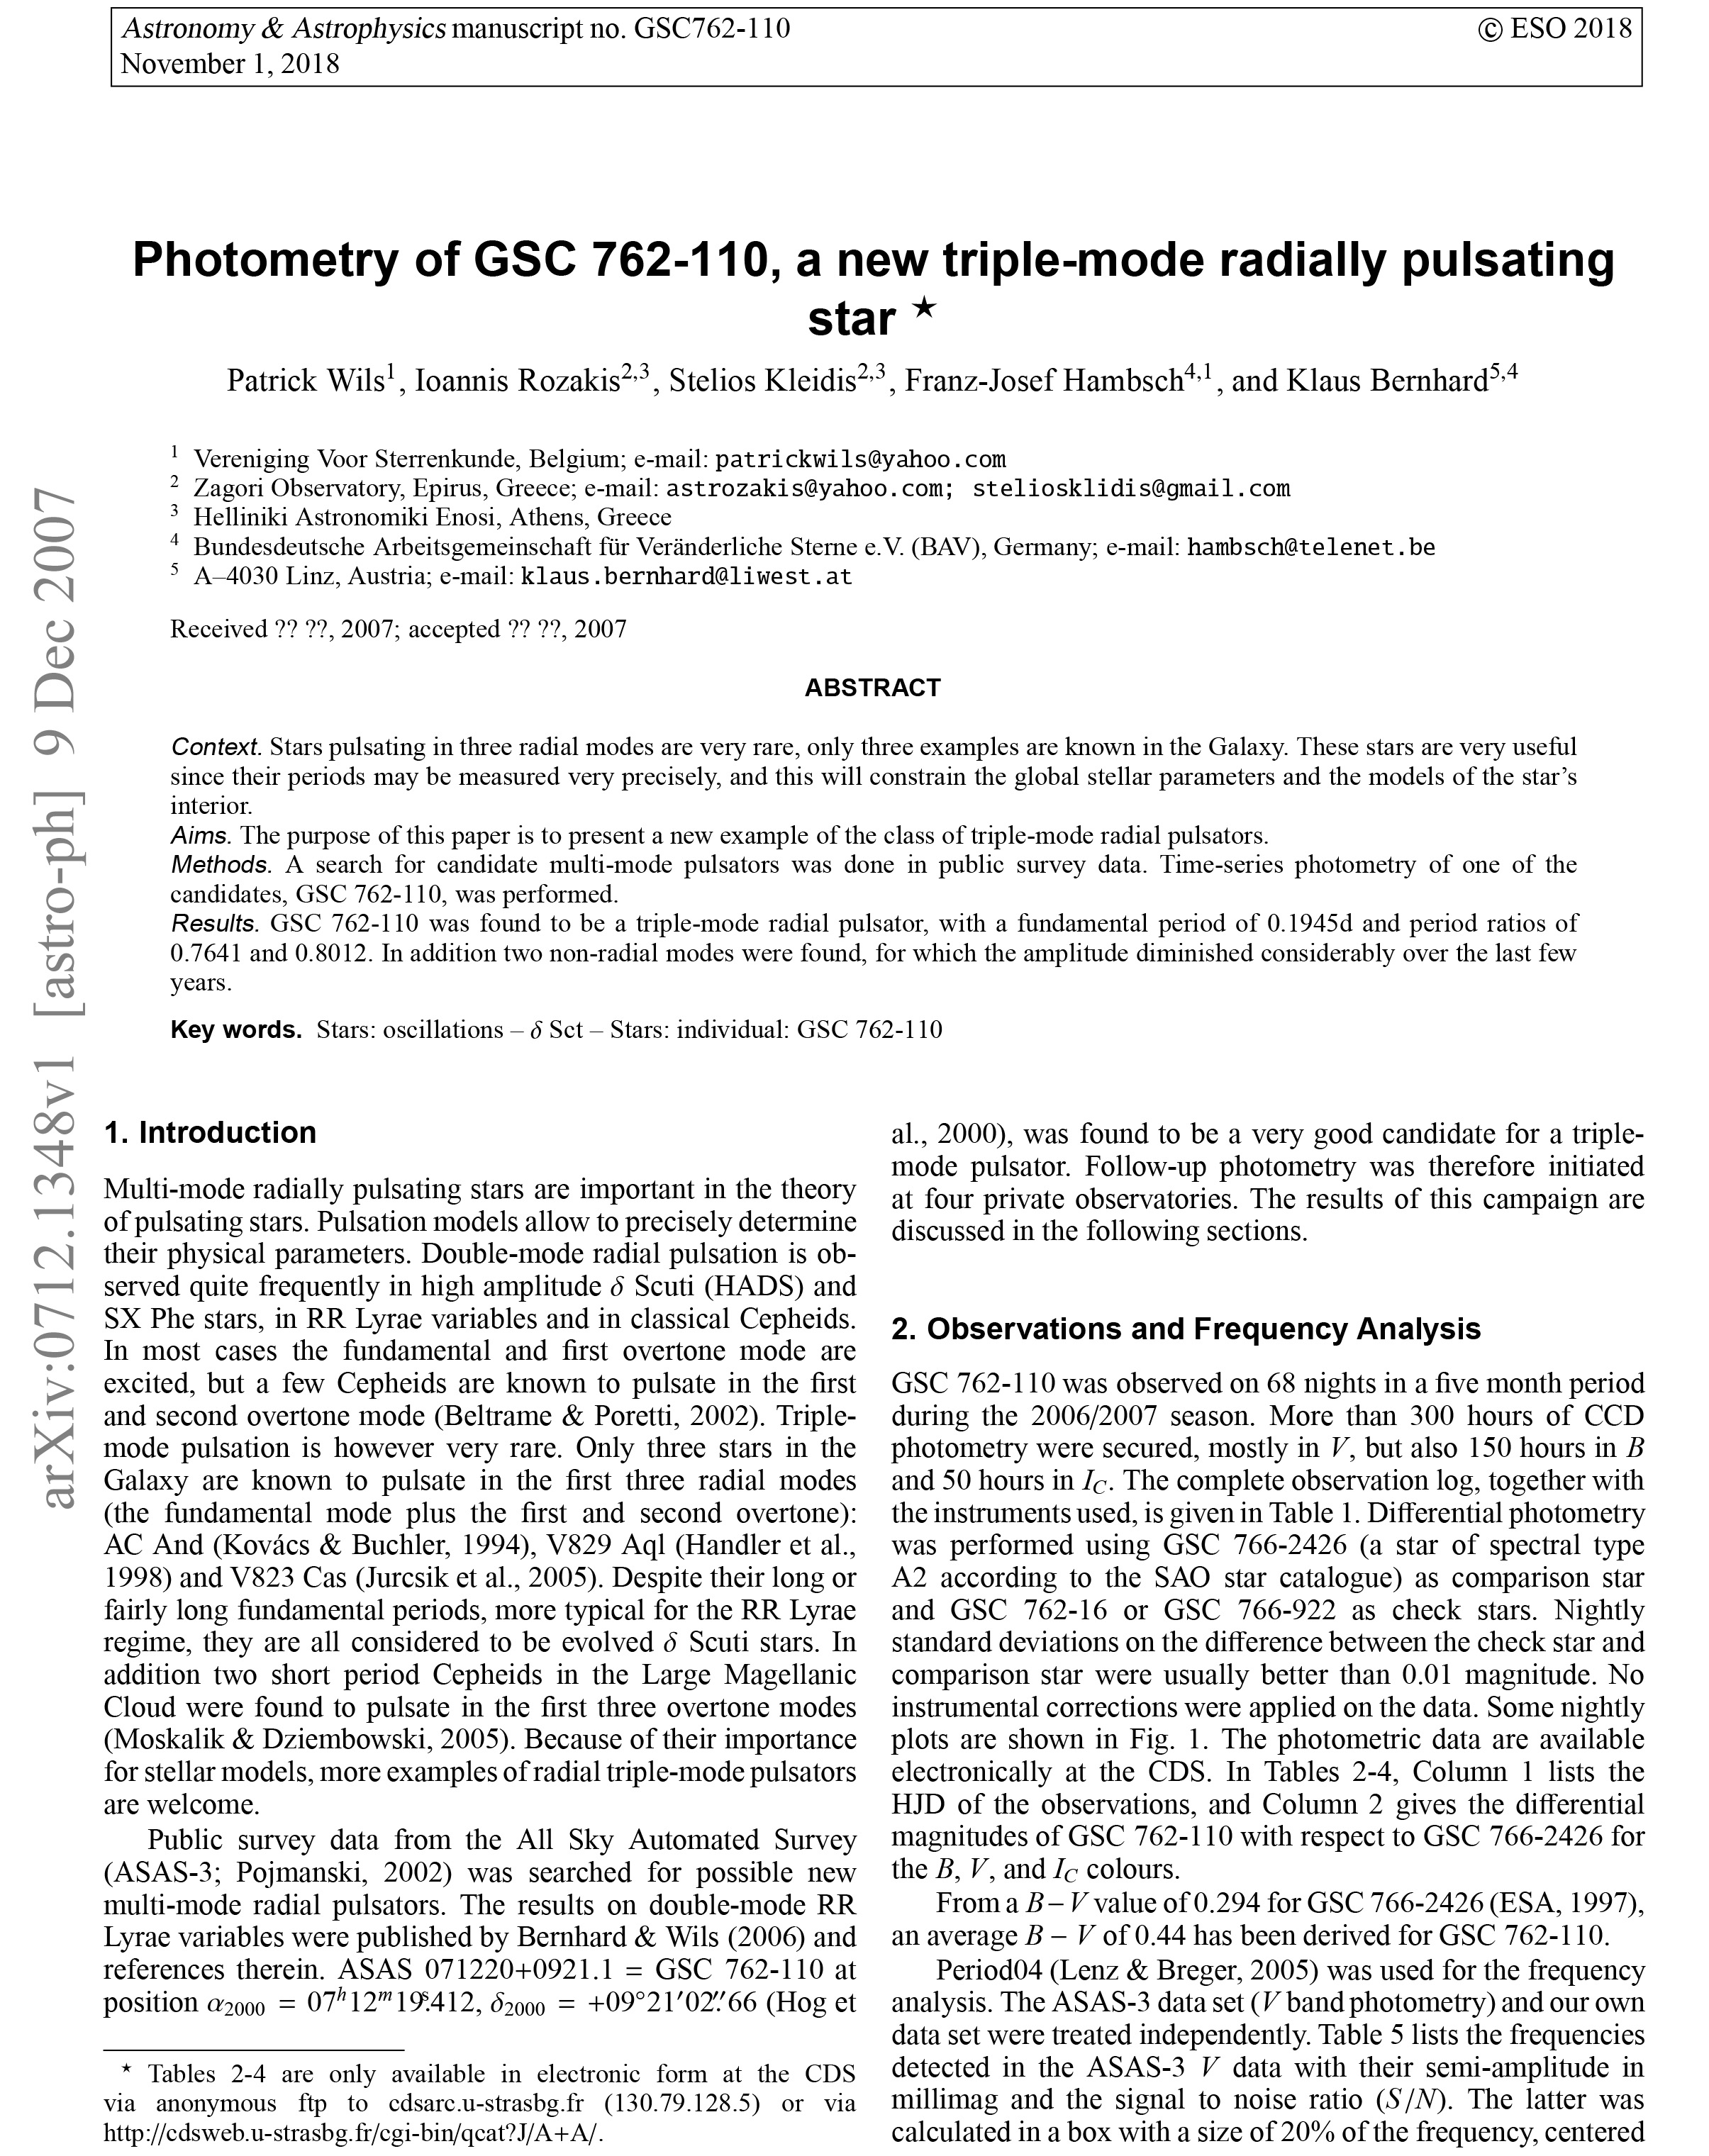 Photometry of GSC 762-110, a new triple-